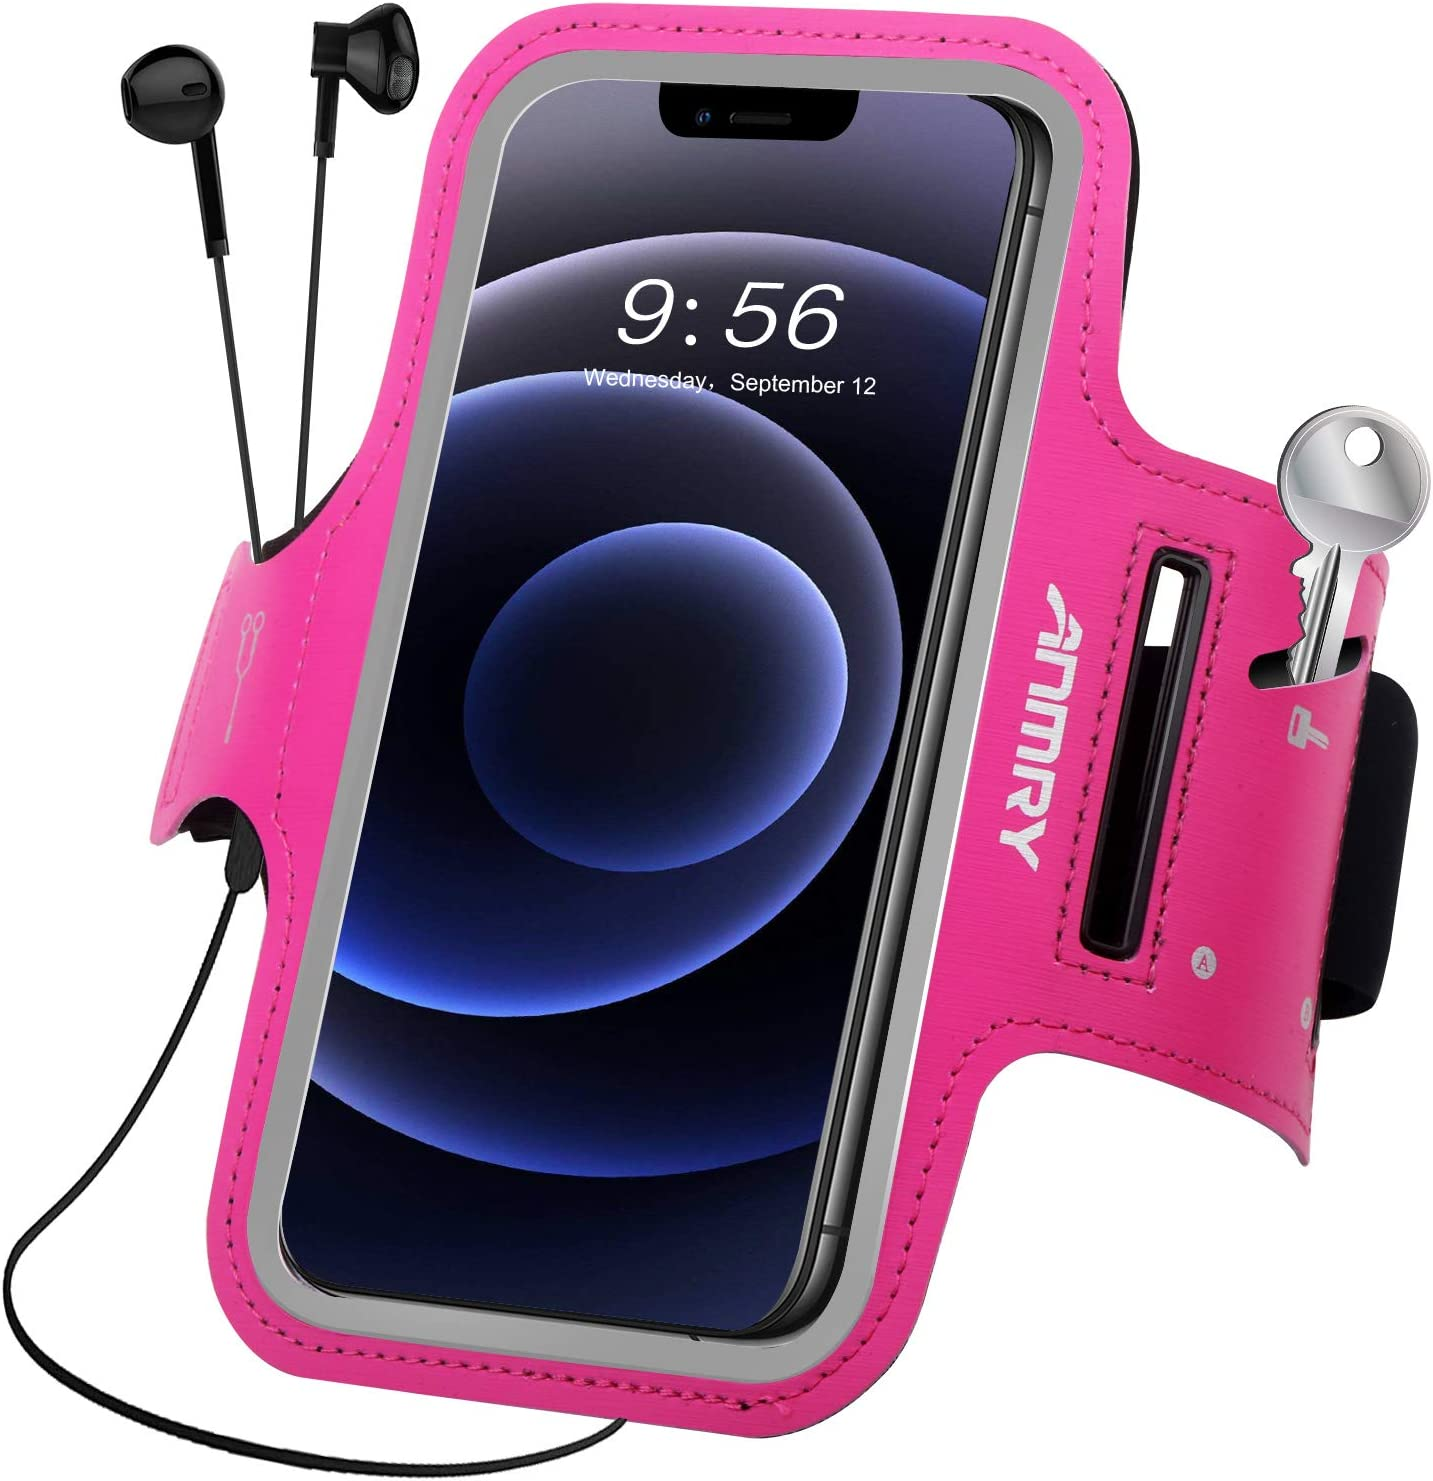 Cell Phone Armband,ANMRY Running Sports Arm Band Strap Holder Pouch Case for iPhone 11 Pro Max, Xs Max, Xr, 8 7 6 Plus, Galaxy S10 S9 S8 S7 S6 S5 Plus, W/Key Holder and Card Slot (Rose Pink)